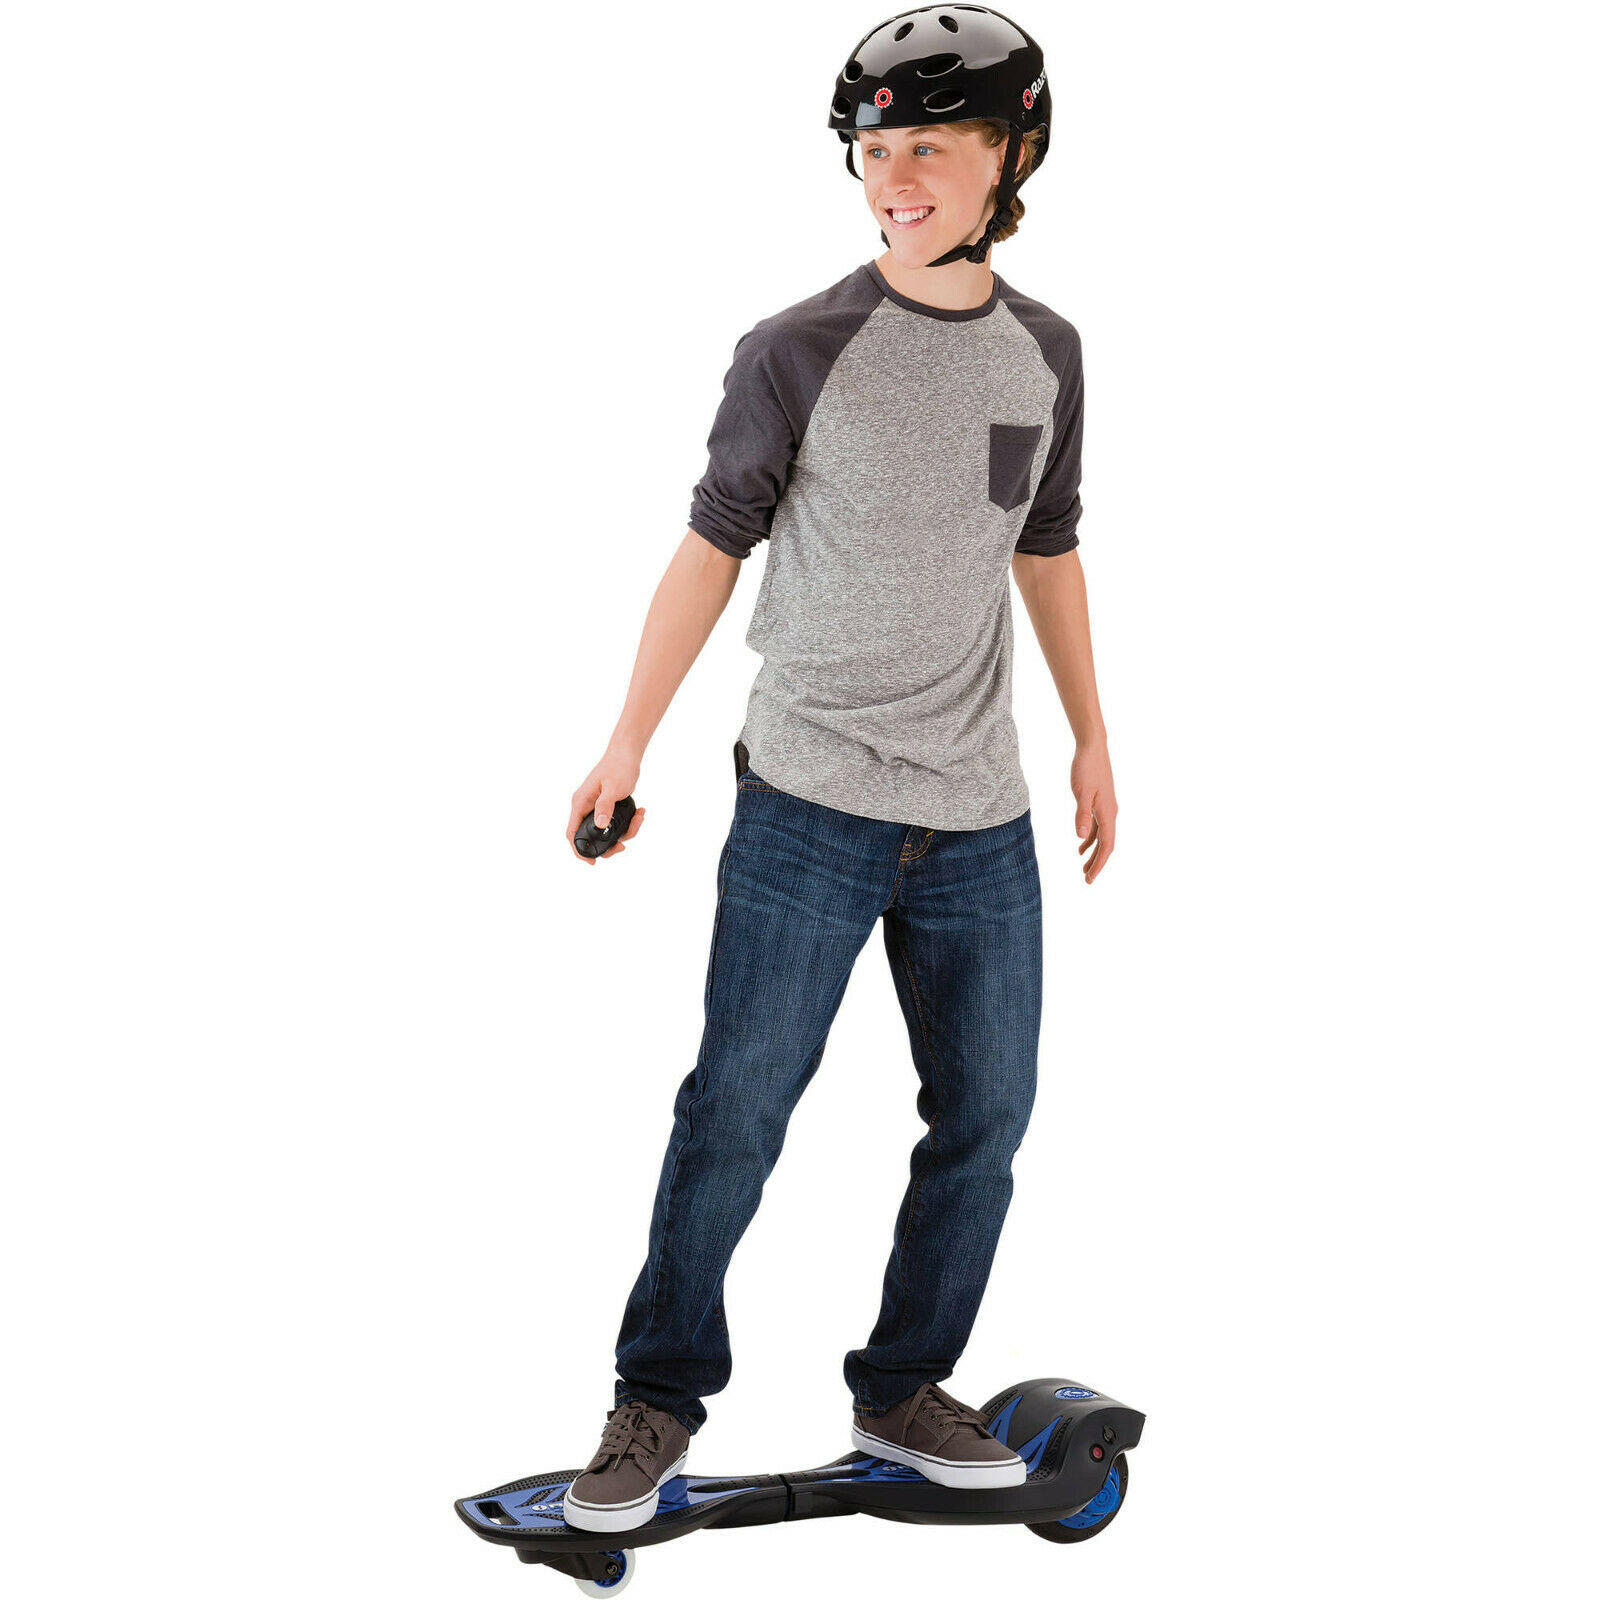 Razor RipStik Electric Caster Board with Power Core Technology Outdoor sport